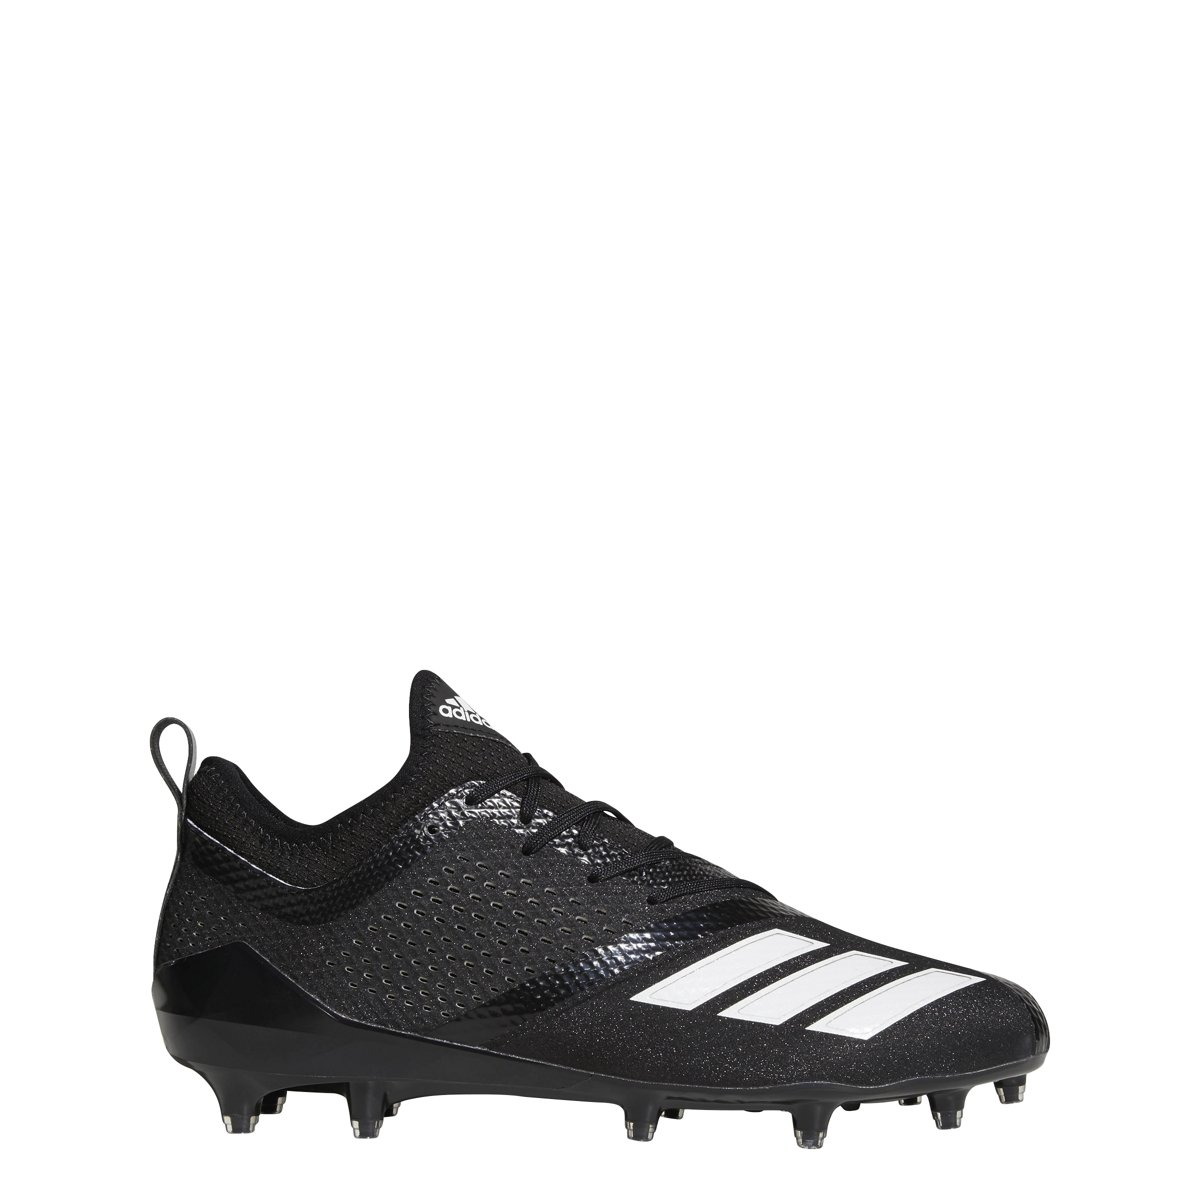 adidas Adizero 5Star 7.0 Cleat Men's Football B079YZBMNV 8.5 D(M) US|Black-white